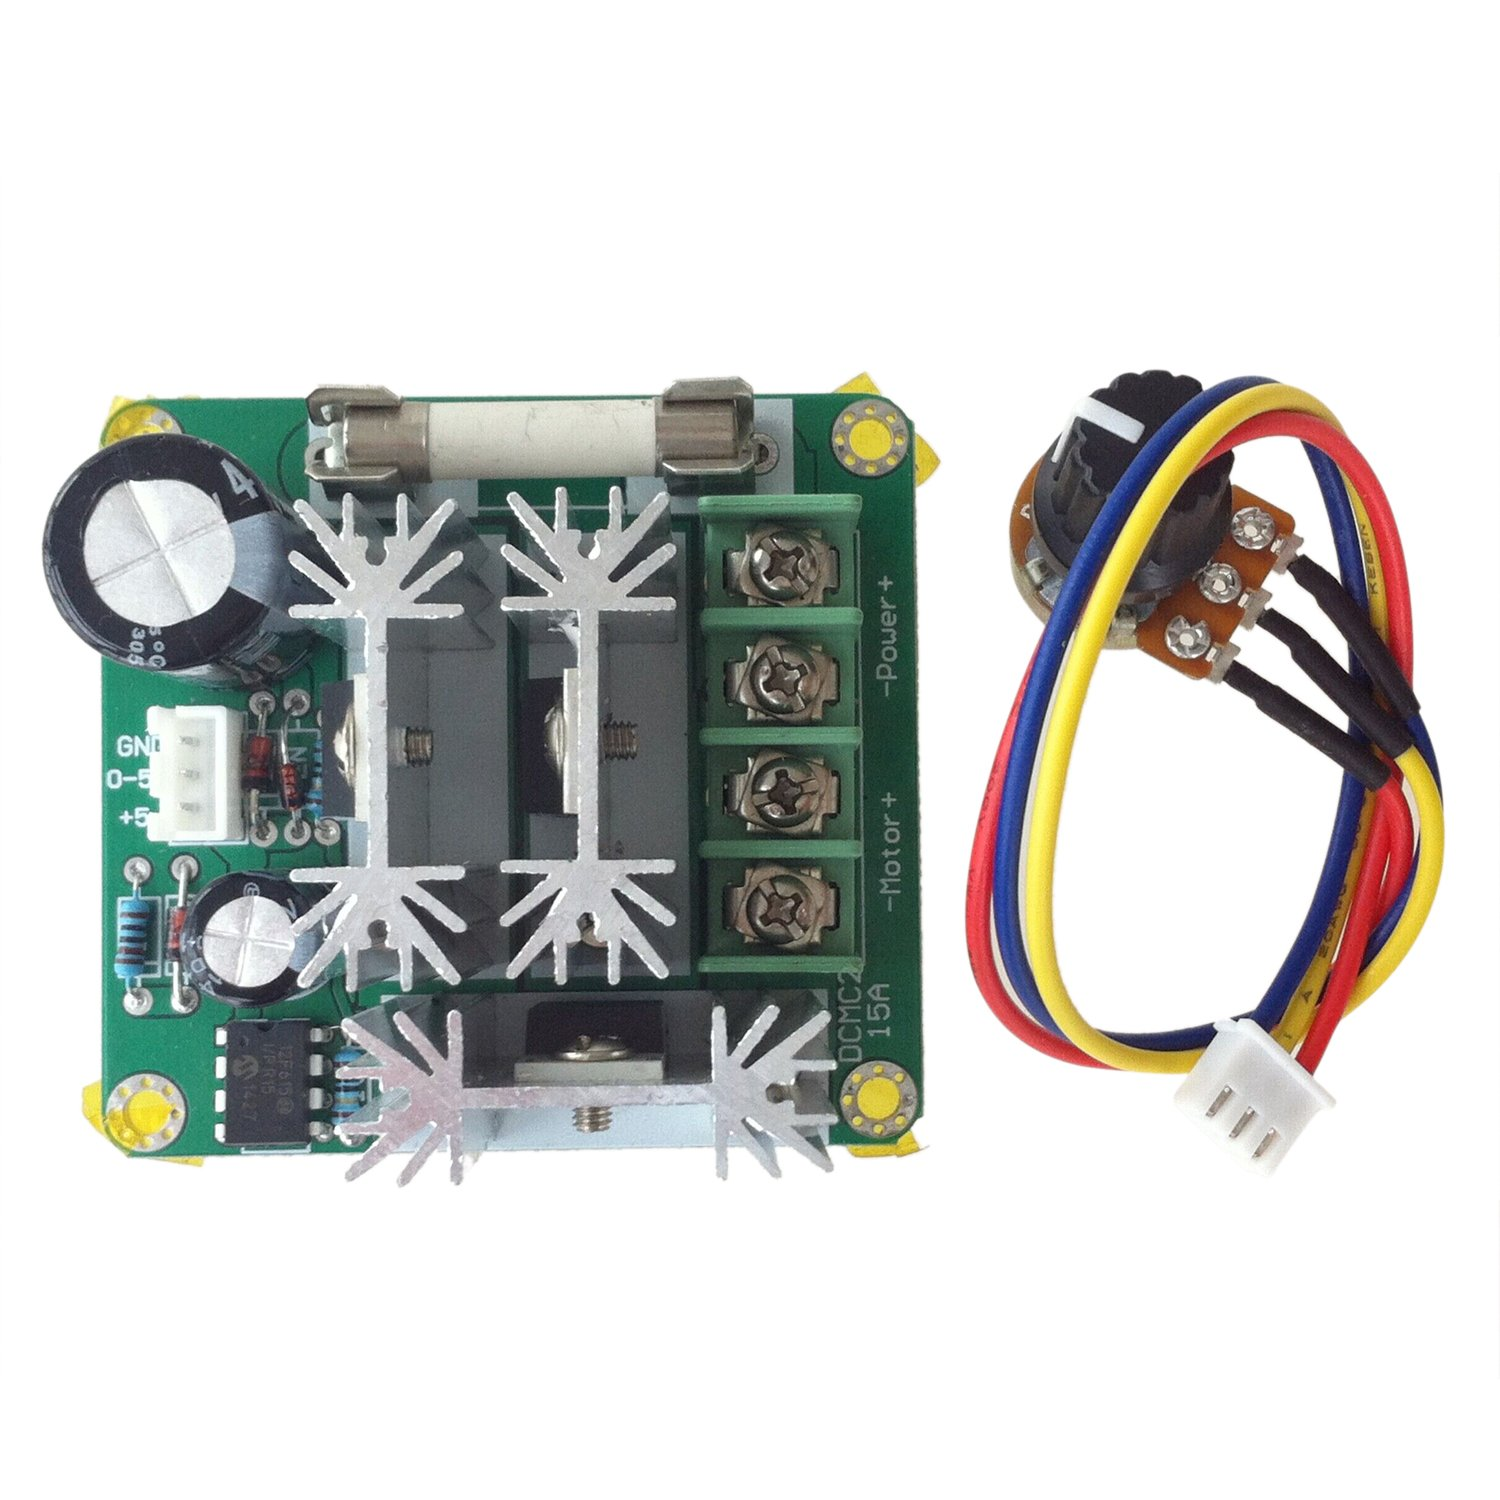 SODIAL(R) DC6V-90V 15A Pulse Width PWM DC Motor Speed Controller Switch 021114